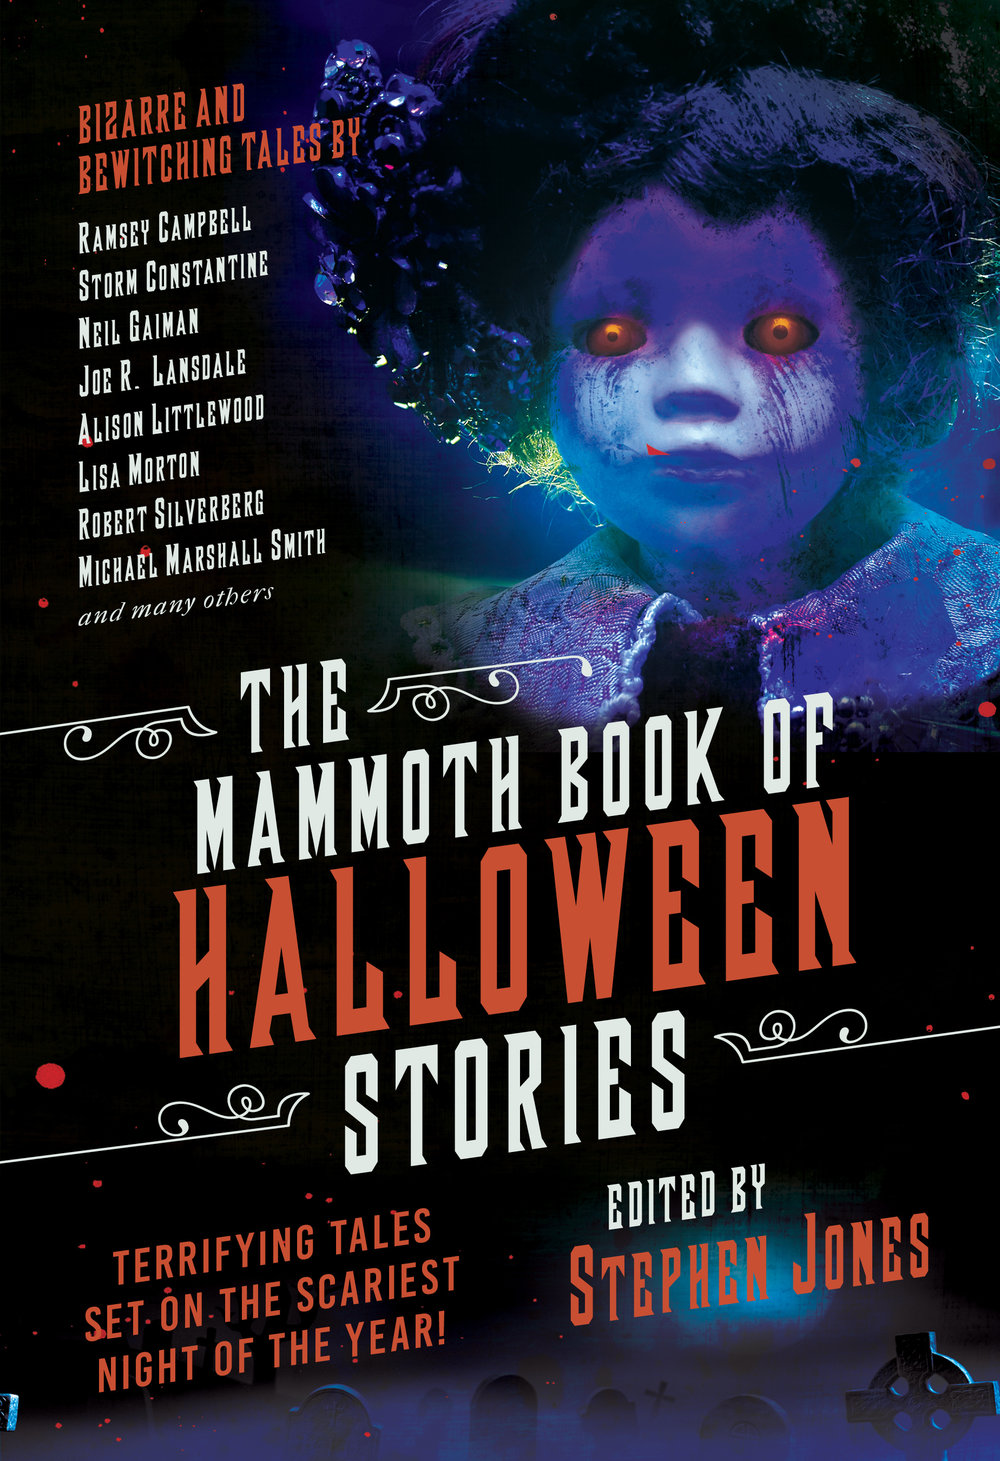 Mammoth Book of Halloween Stories_Stephen Jones.JPG